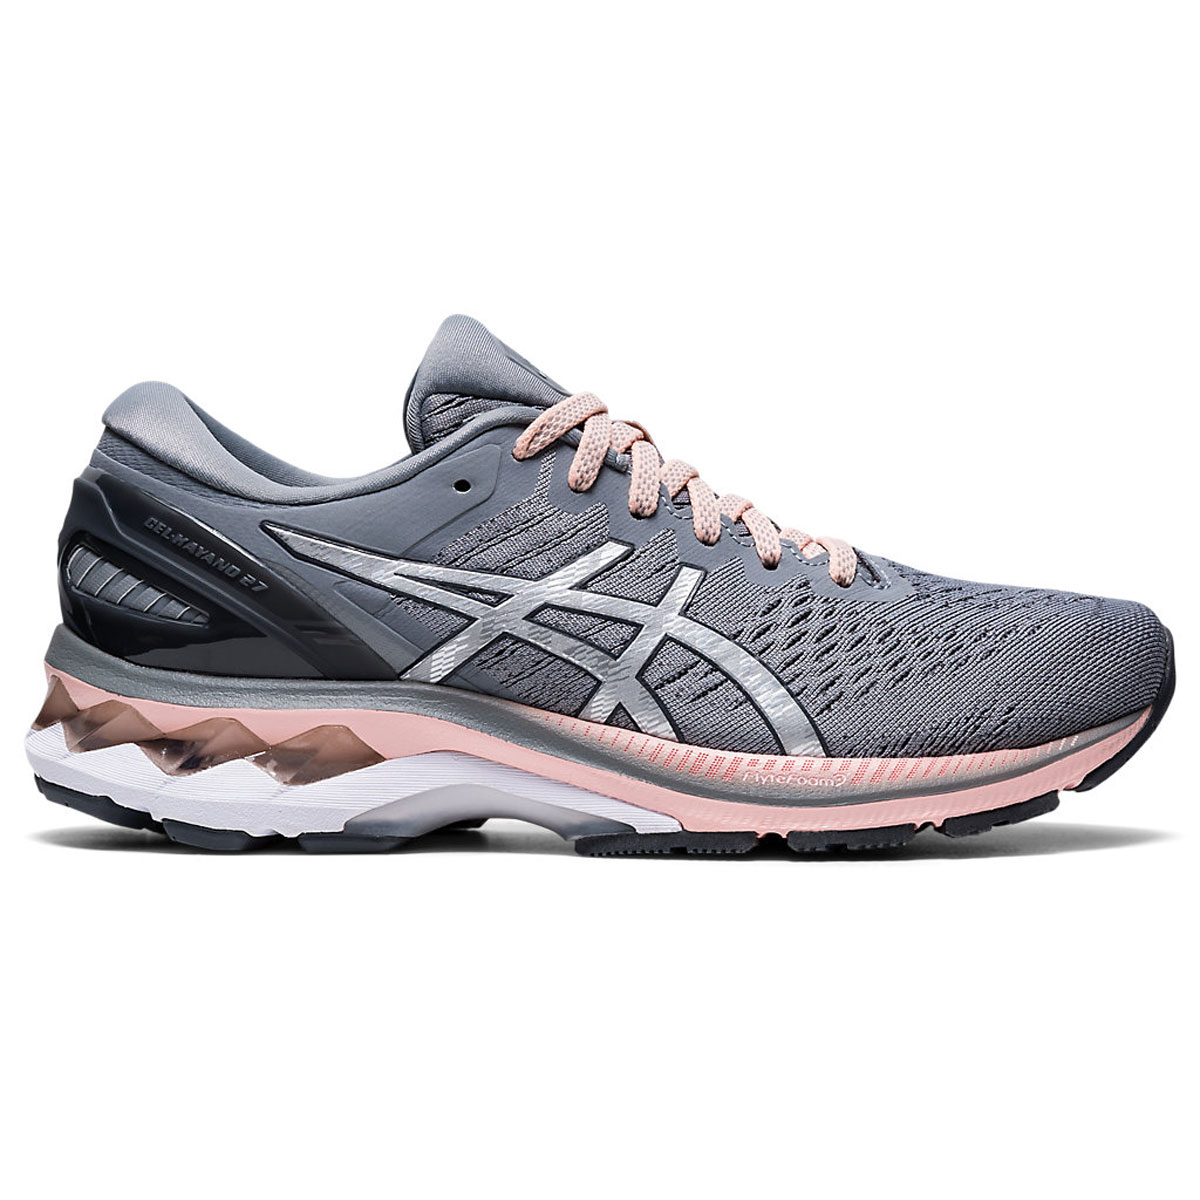 Women's Asics GEL-Kayano 27 Running Shoe - Color: Sheet Rock/Pure (Regular Width) - Size: 5, Sheet Rock/Pure, large, image 1